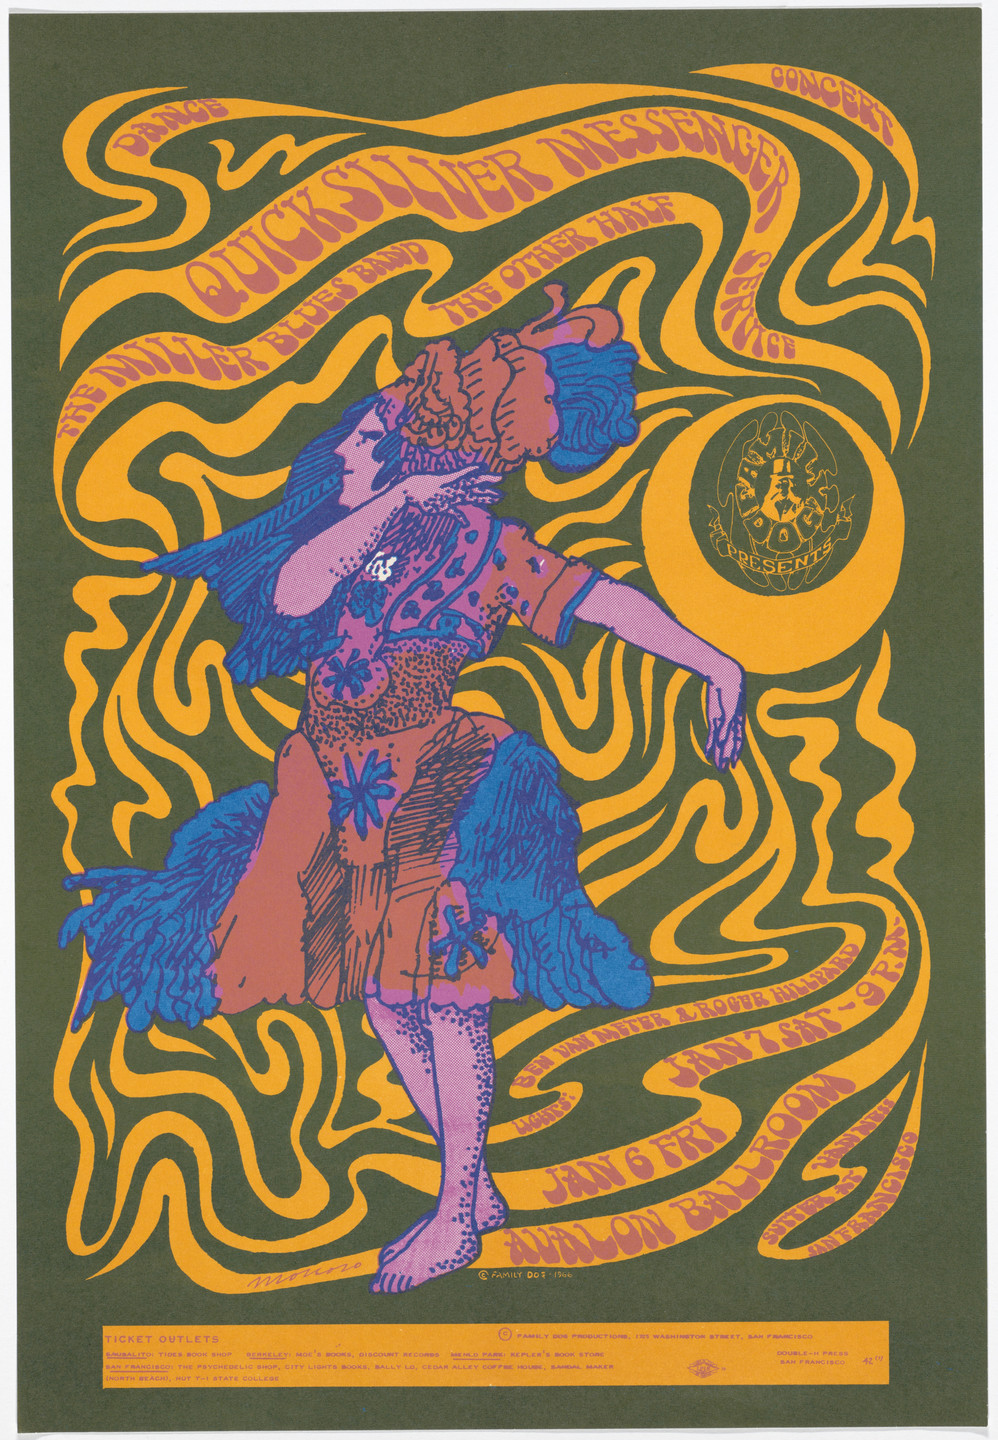 Victor Moscoso. Quicksilver Messenger Service, The Miller Blues Band, The Other Half. 1967